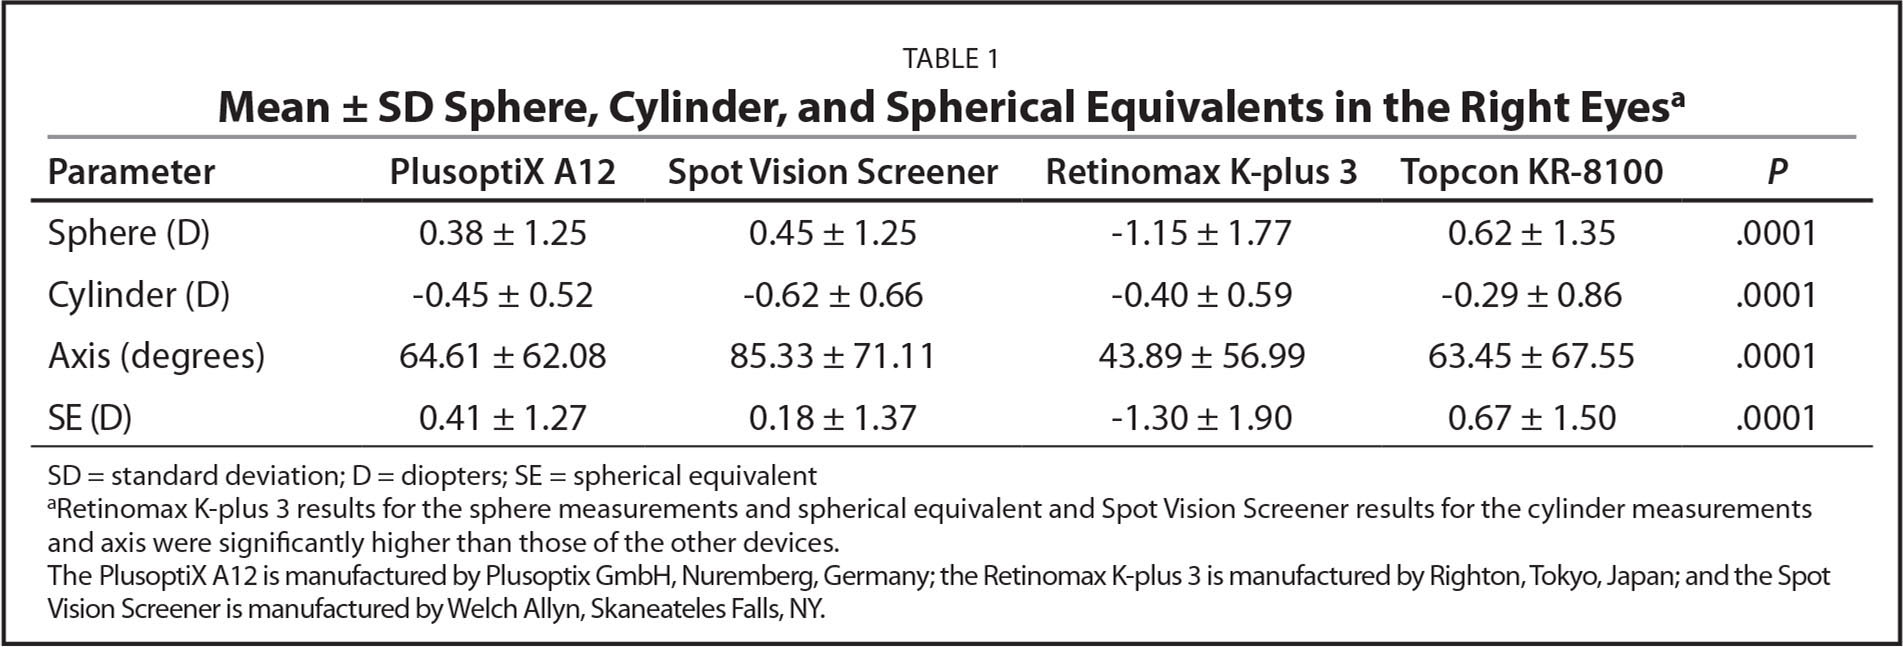 Mean ± SD Sphere, Cylinder, and Spherical Equivalents in the Right Eyesa